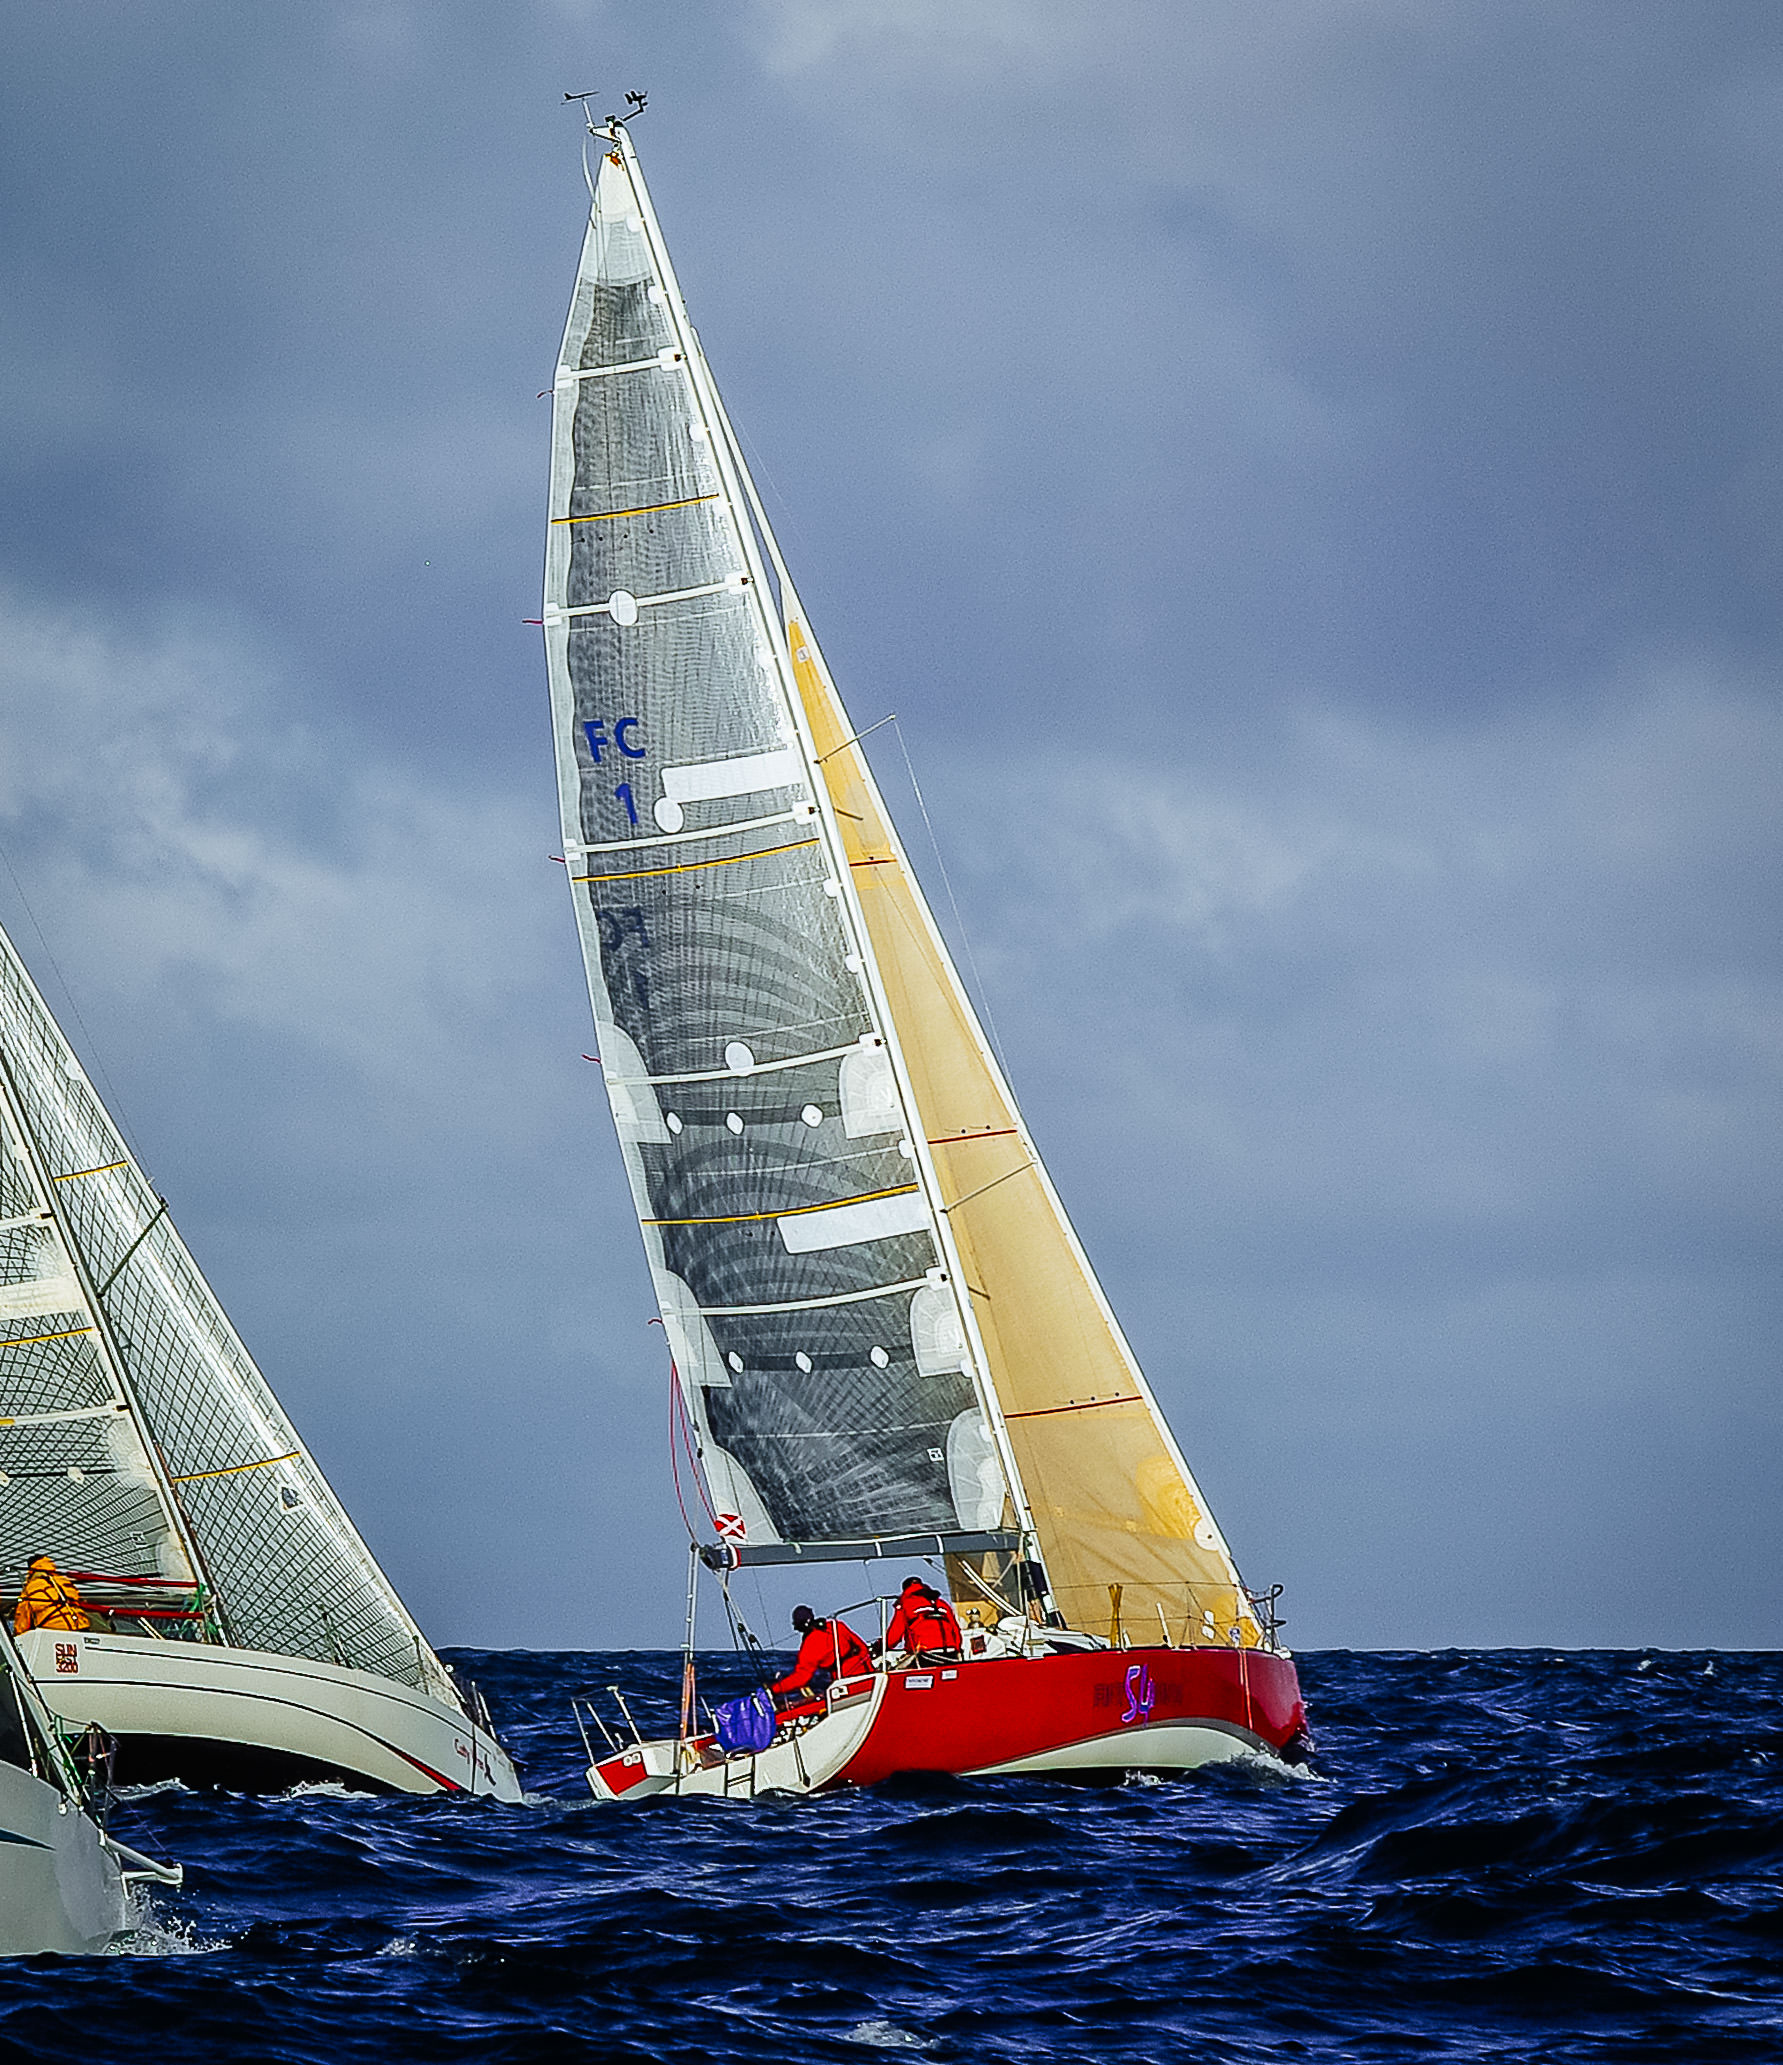 The white boat on the left, is using Tape-Drive sails, while the red boat's mainsail is an X-Drive sail made with carbon tapes on a polyester base laminate.